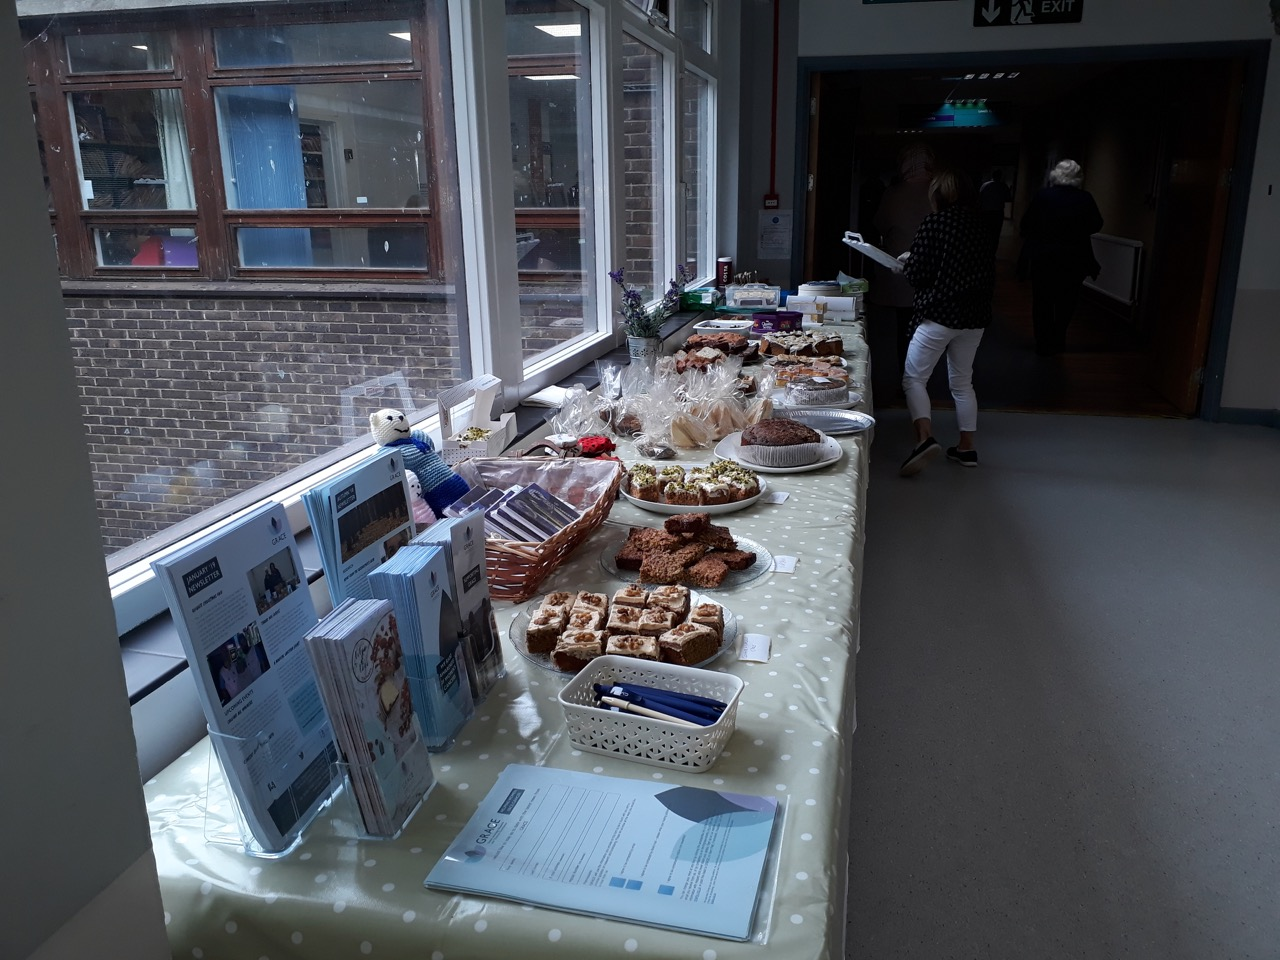 Table ready for Cake Sale for Ovarian Cancer Awareness at the Royal Surrey County Hospital